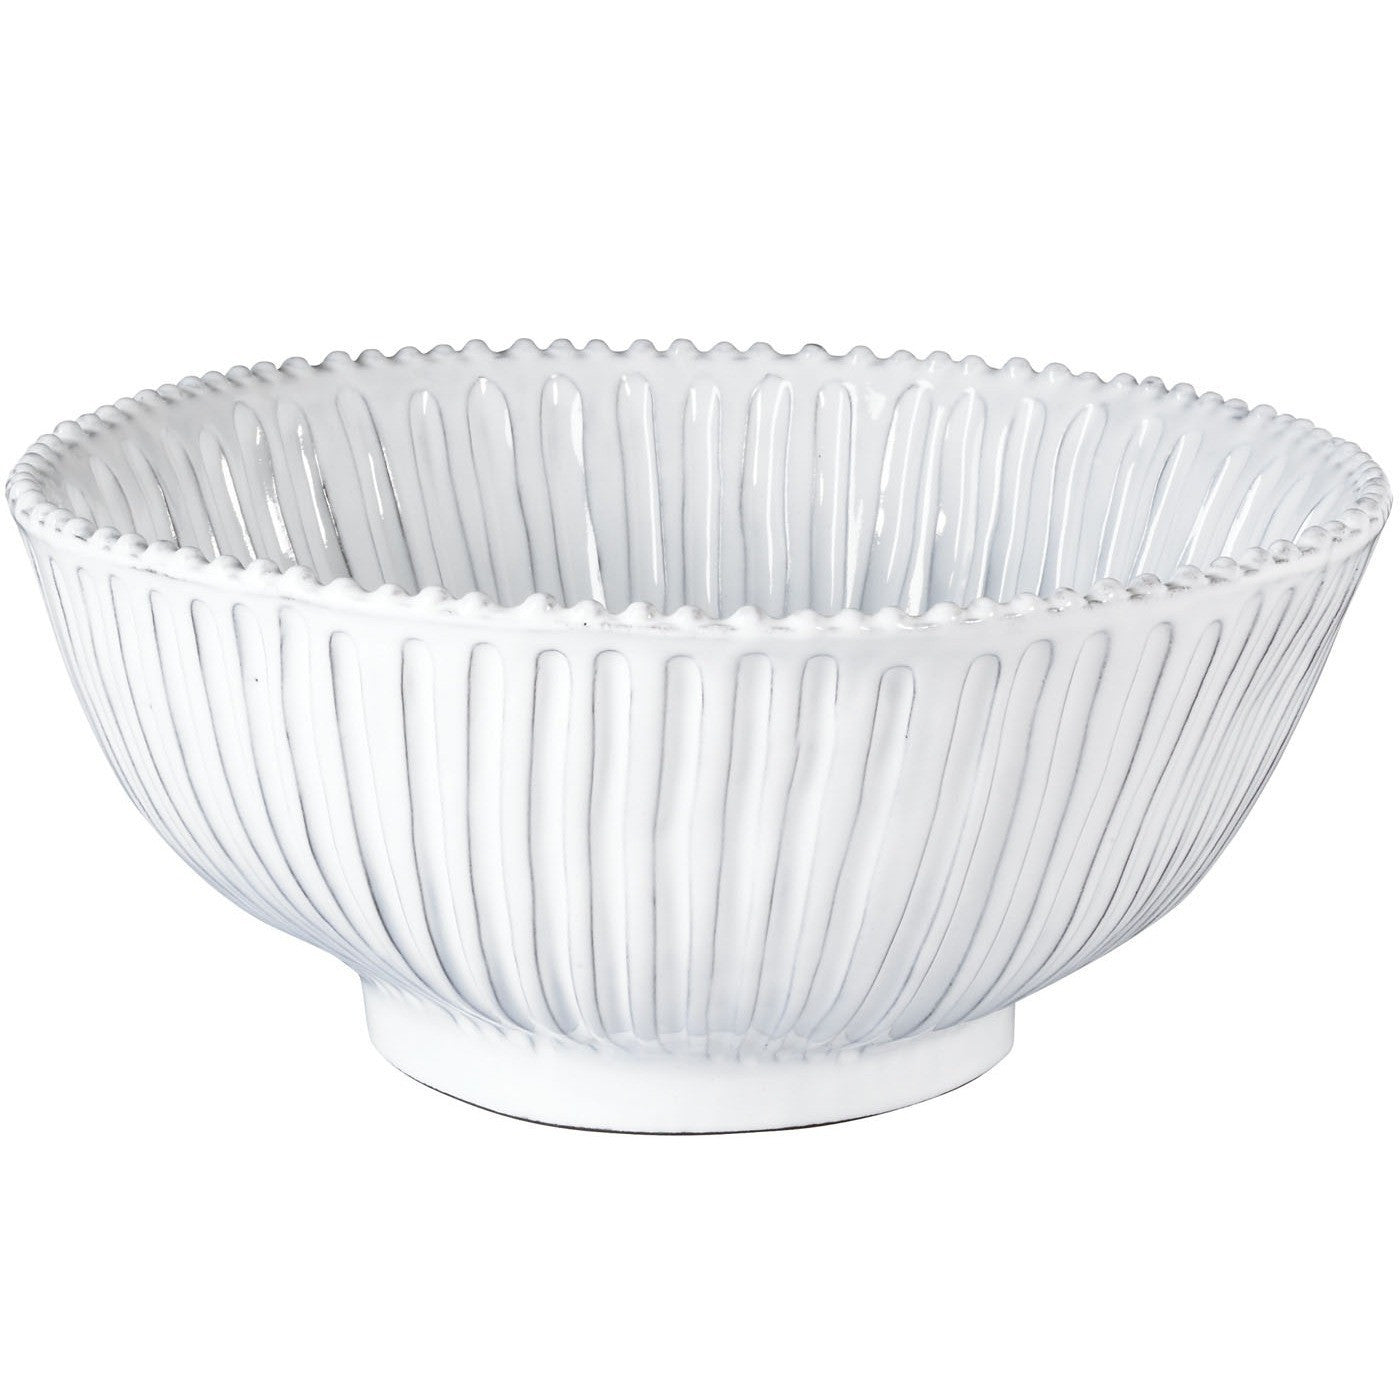 Vietri Incanto - Stripe - Serving